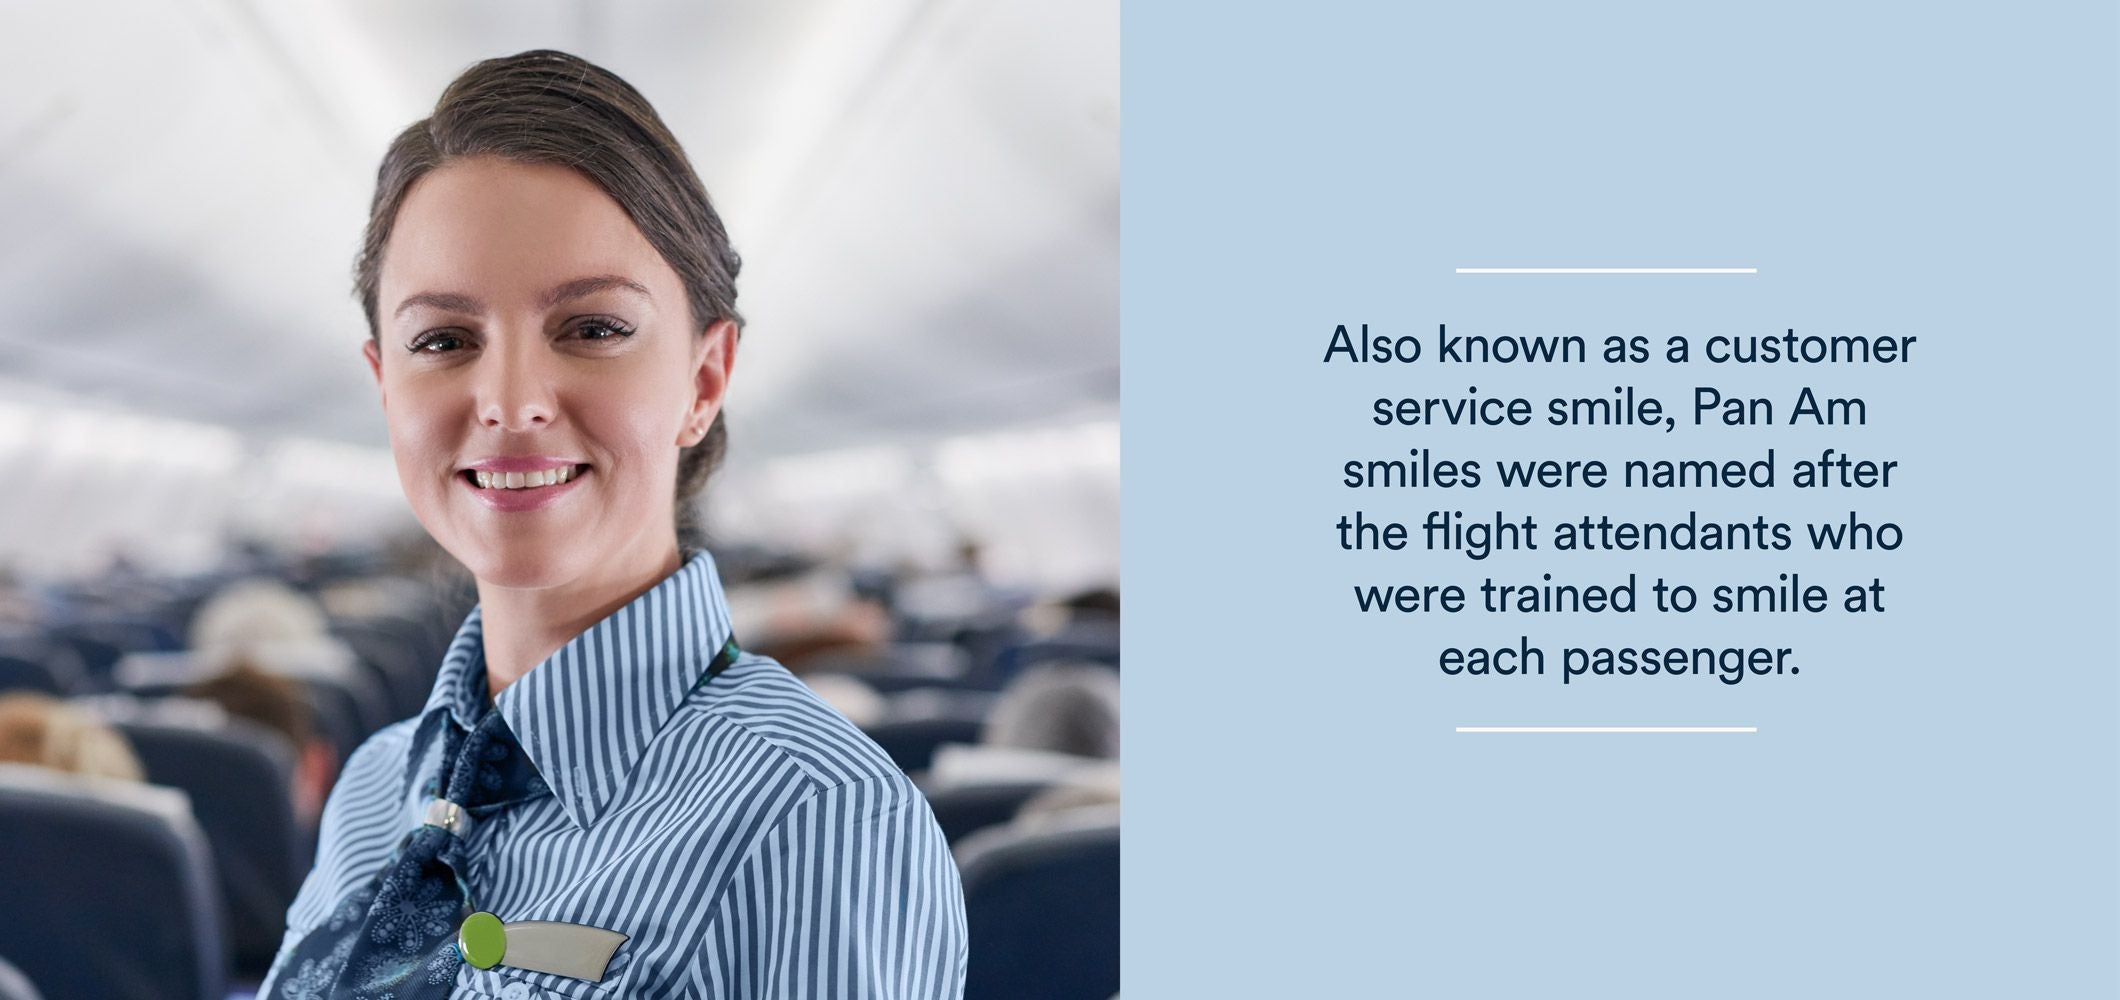 a pan am smile is also known as a customer service smile